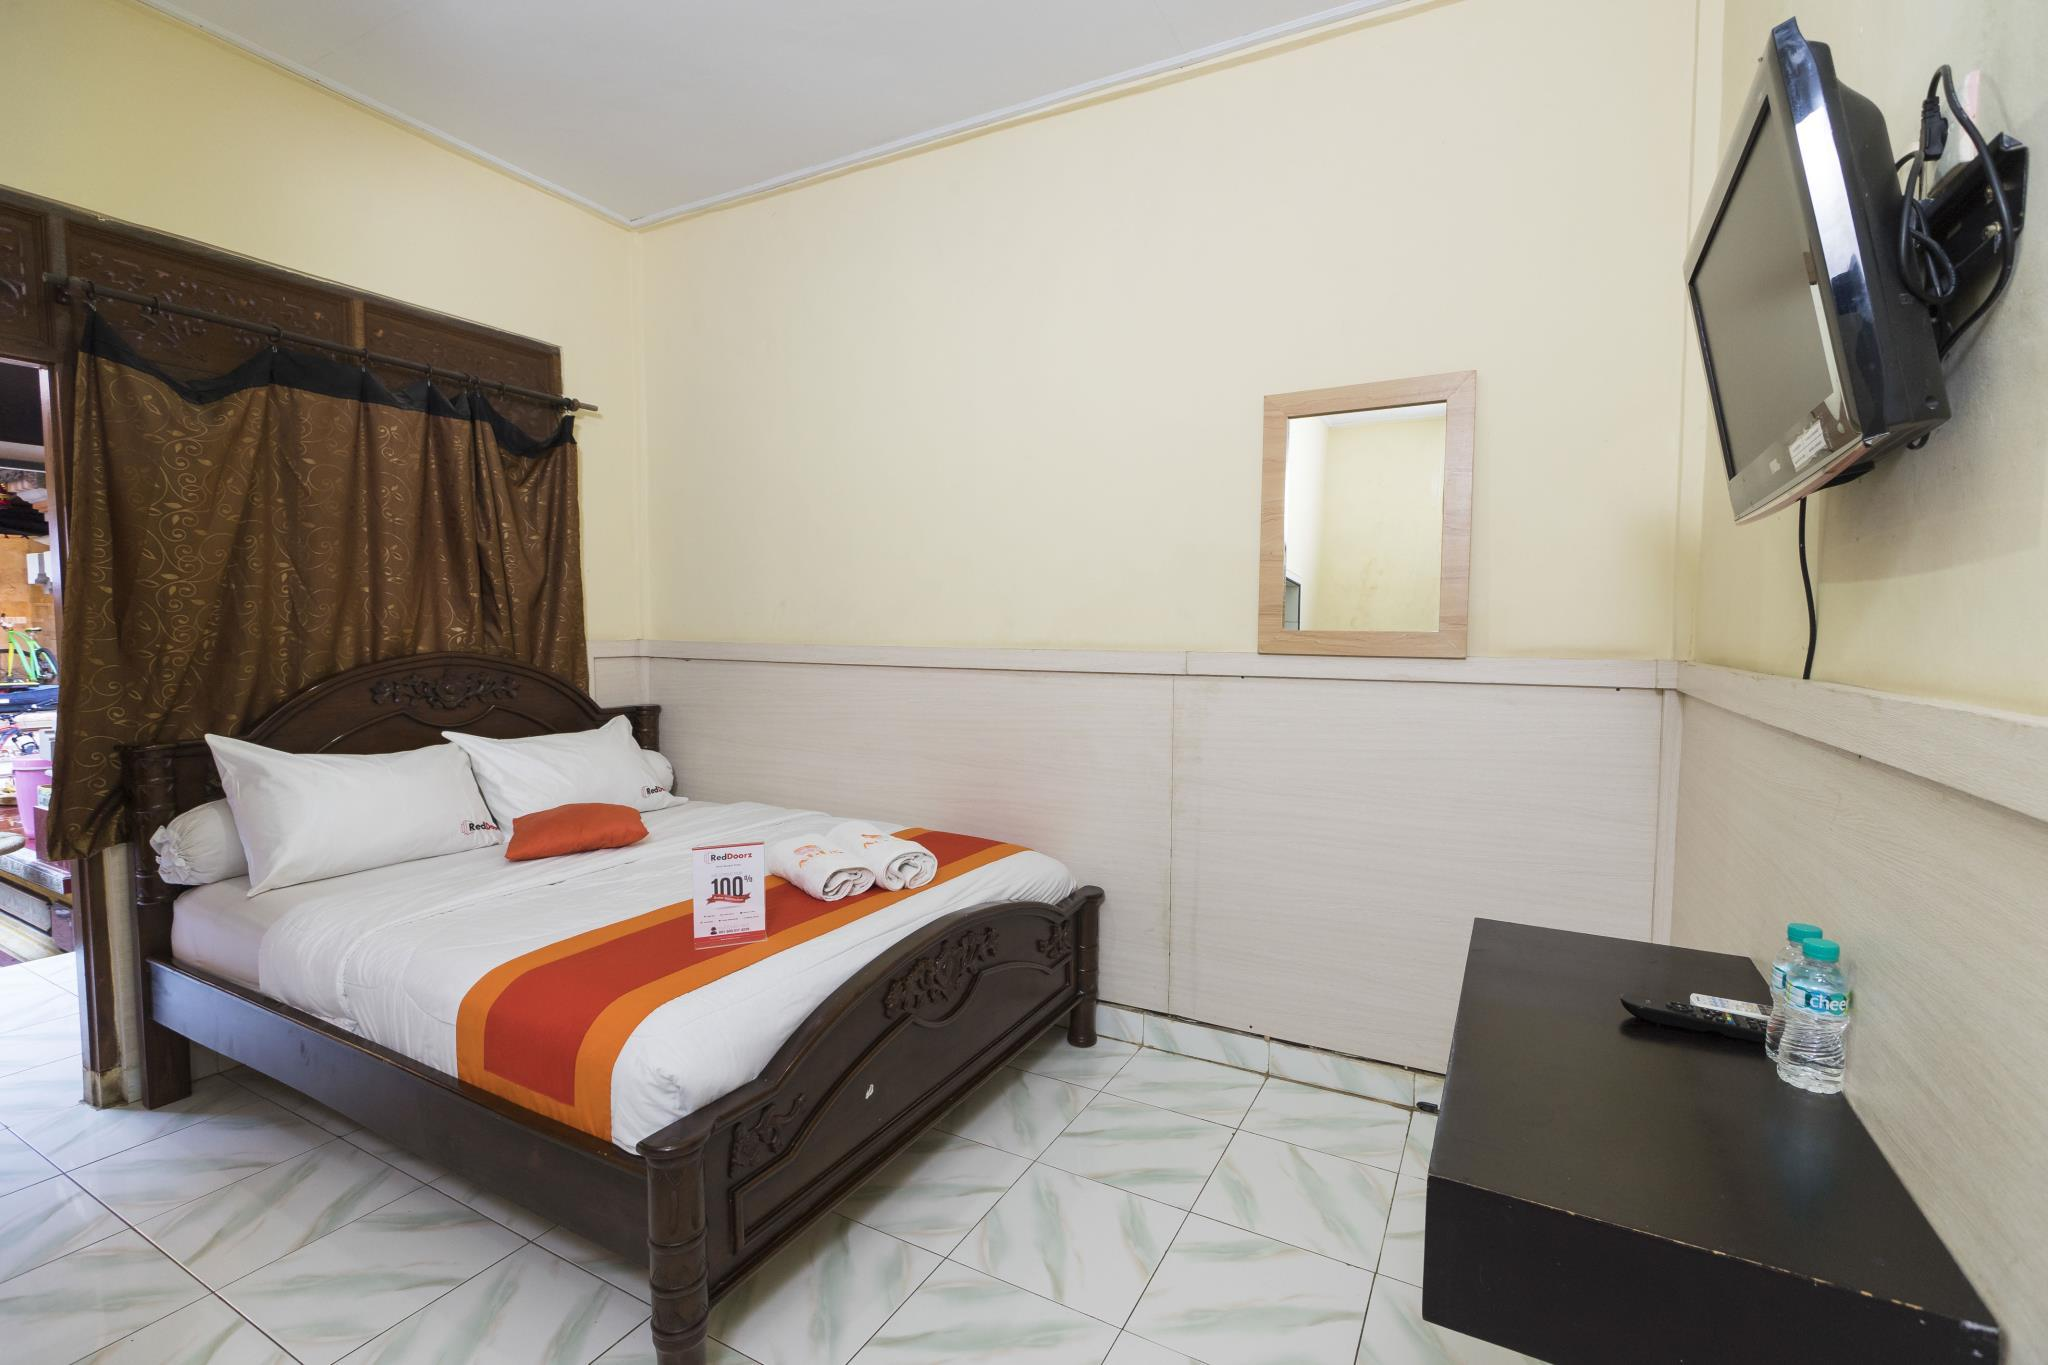 Hotel RedDoorz @ Kartika Plaza 3 - Located at Agus Beach Inn, Jalan Kartika Plaza, Gang Samudra No. 77x, Kuta - Bali